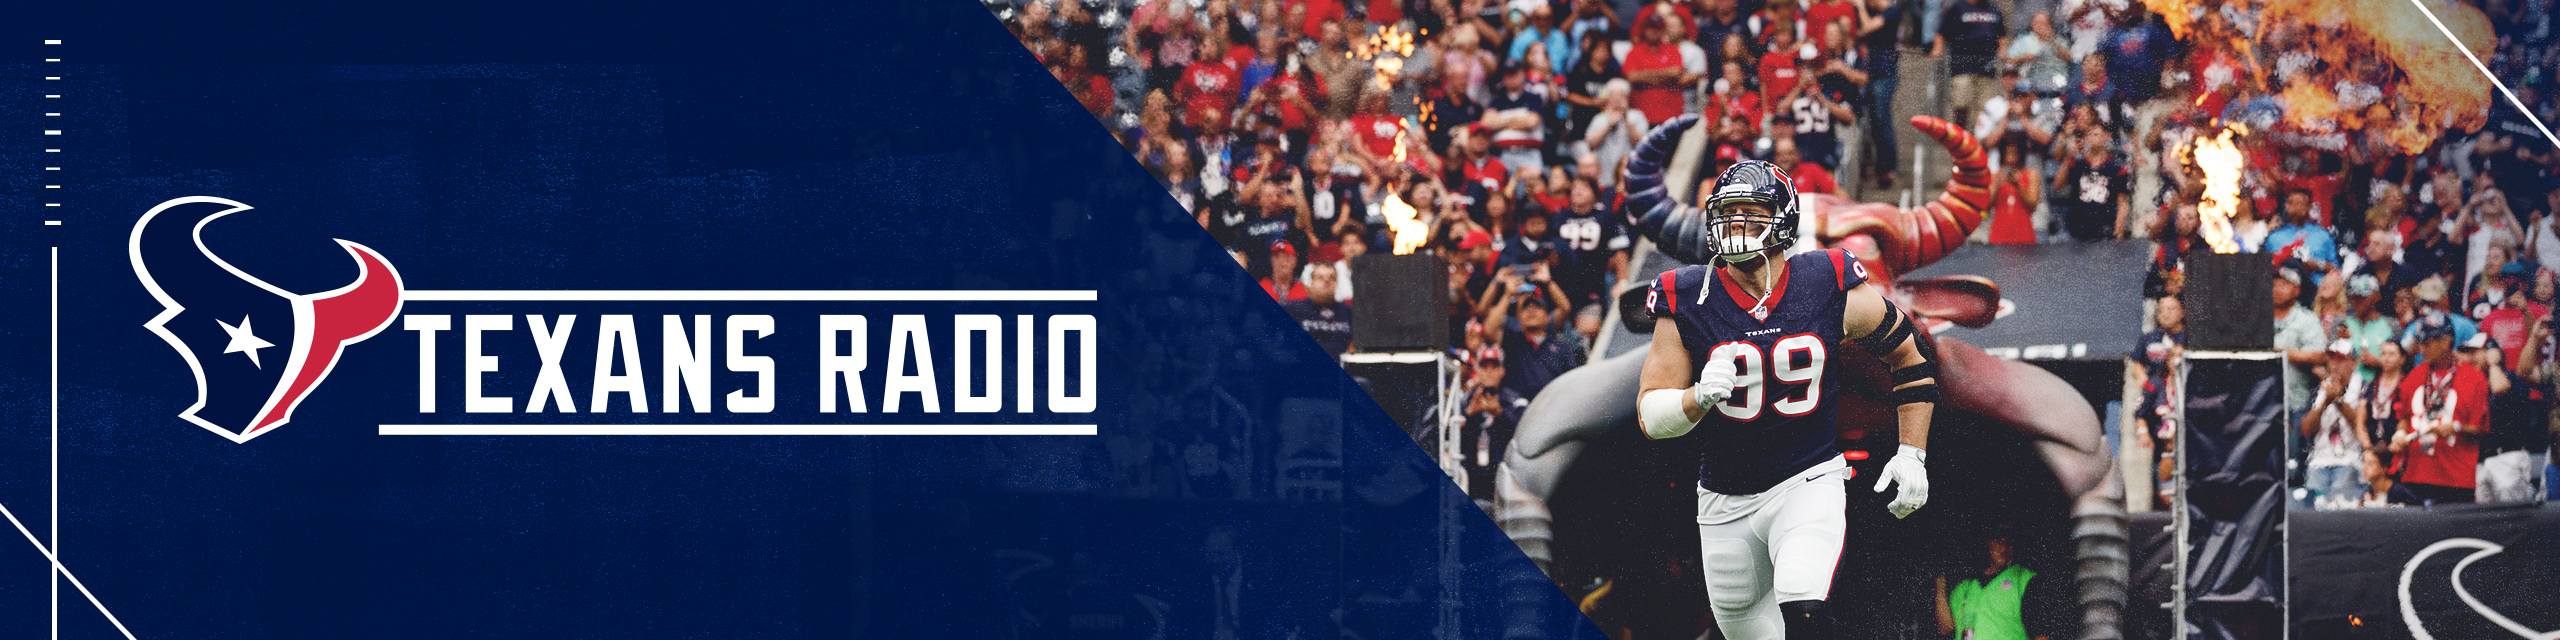 Texans Radio Houston Texans Houstontexans Com